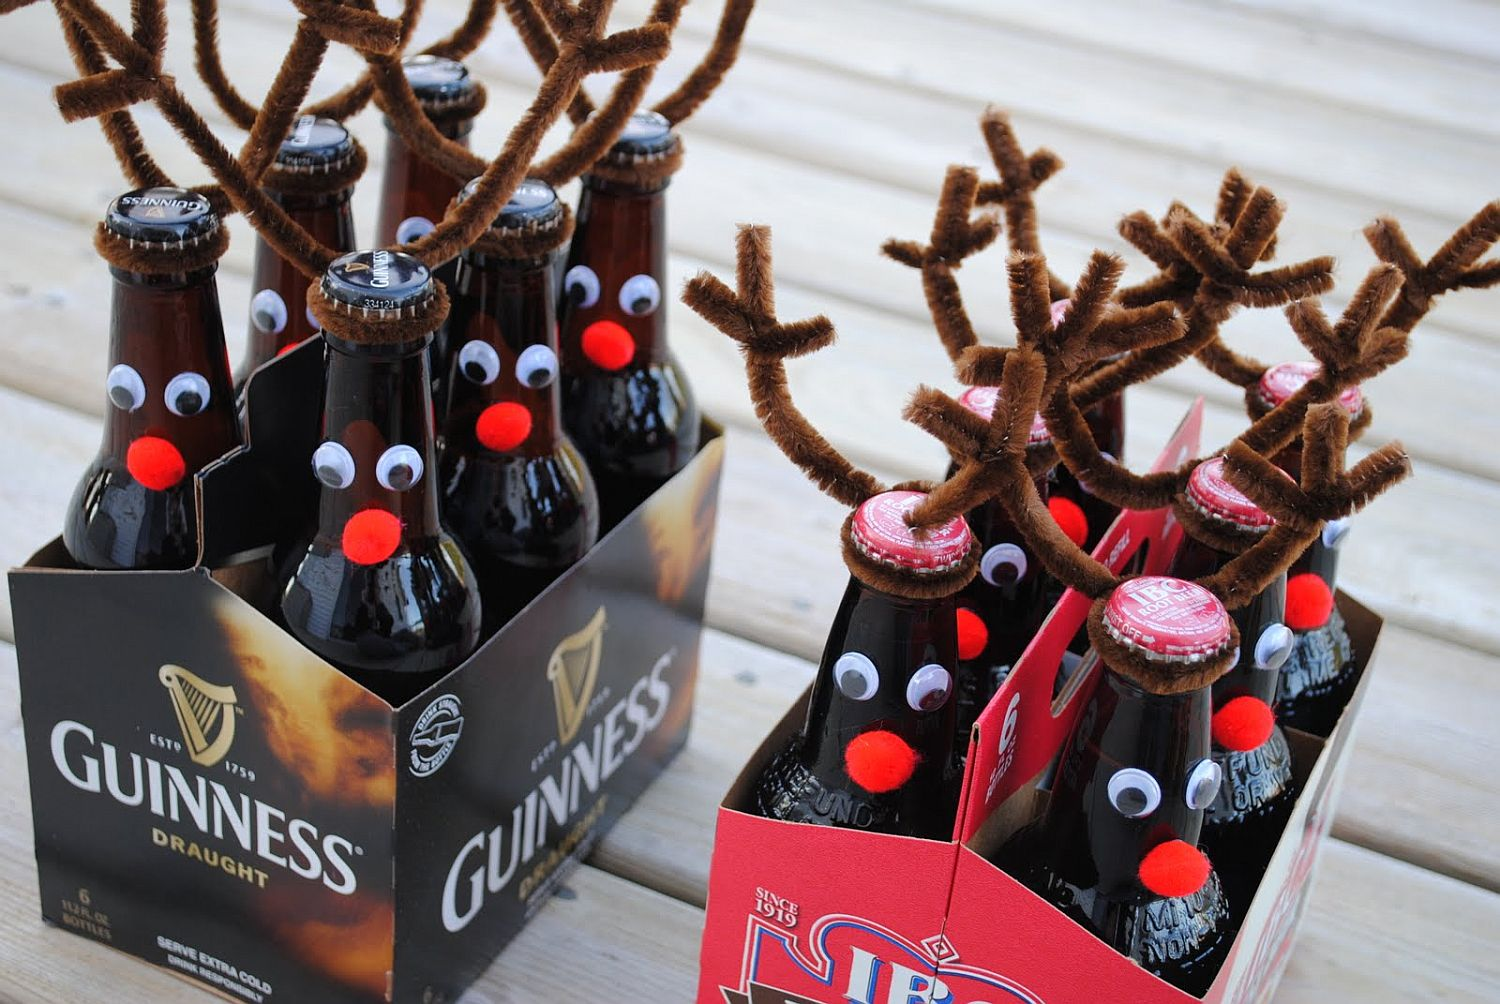 Homemade beer bottle reindeers also make great gifts for friends